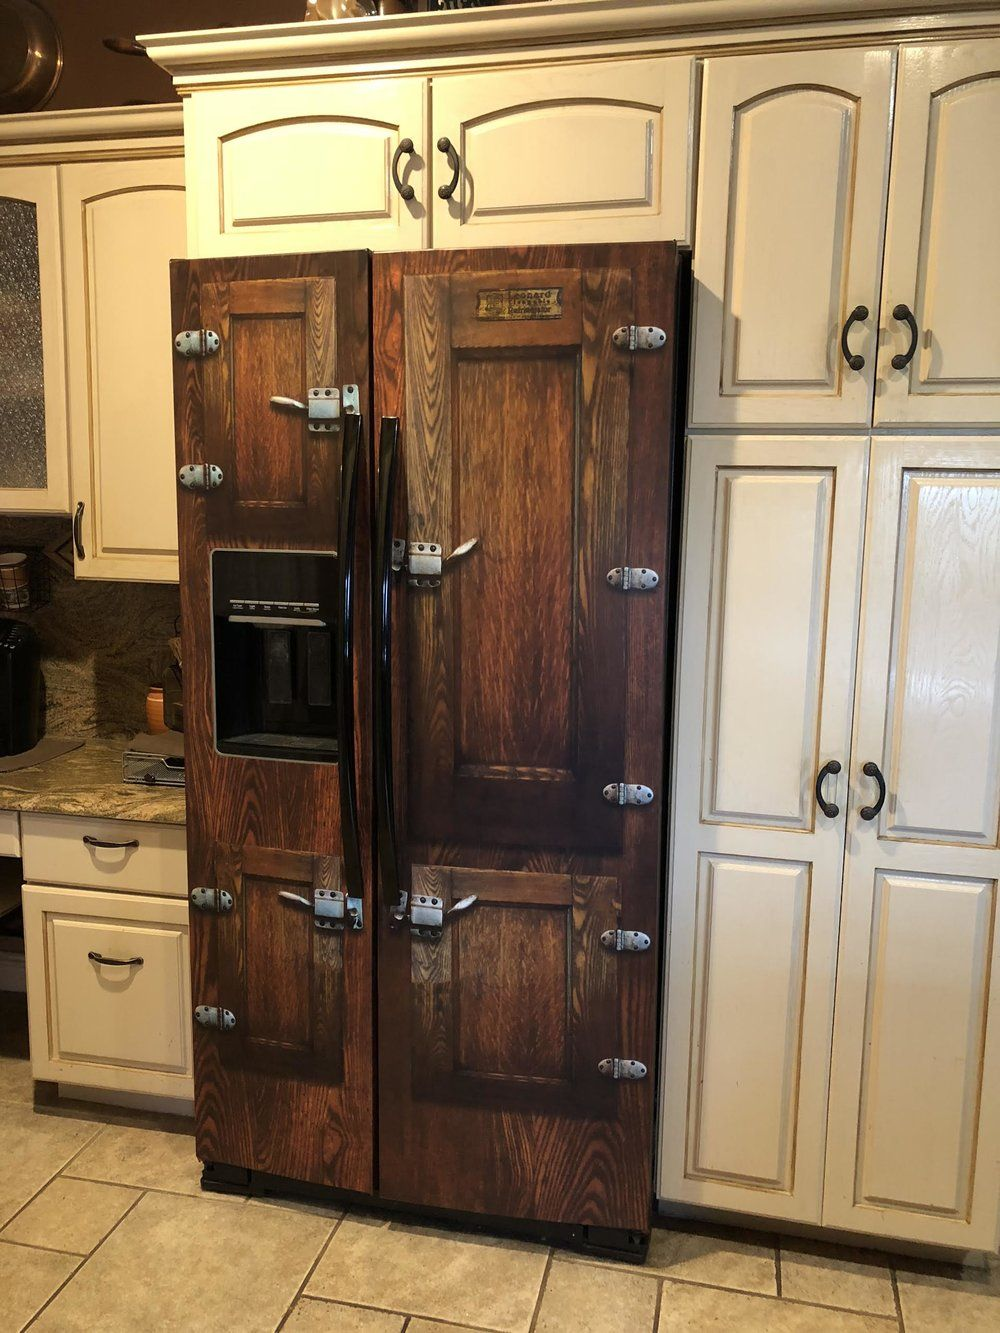 Icebox Side By Side Refrigerator Wrap Vintage Icebox Fridge Cover In 2020 Rustic Kitchen Cabinets Farmhouse Style Kitchen Rustic Cabinets